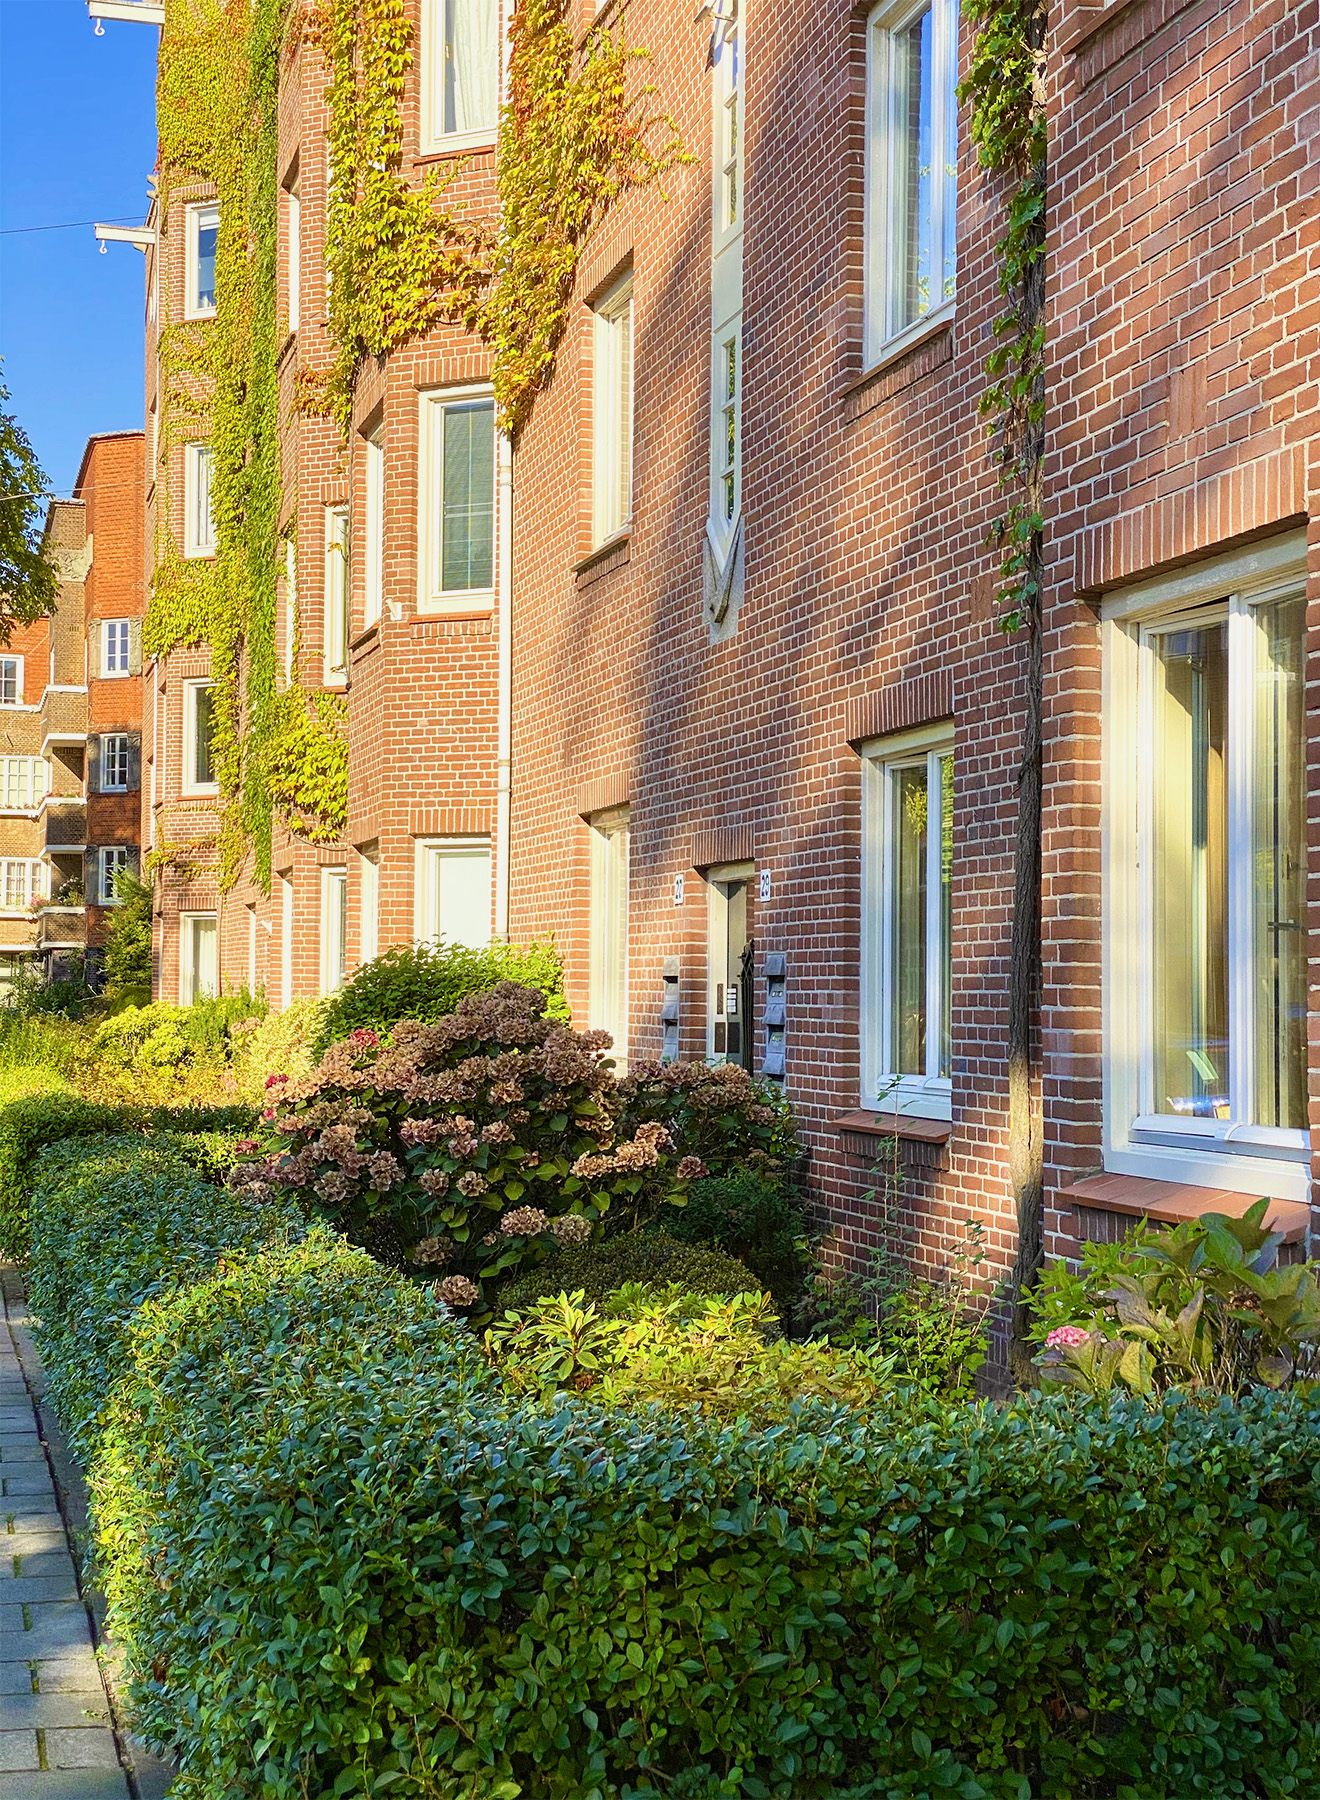 Colourful streets of Amsterdam during springtime